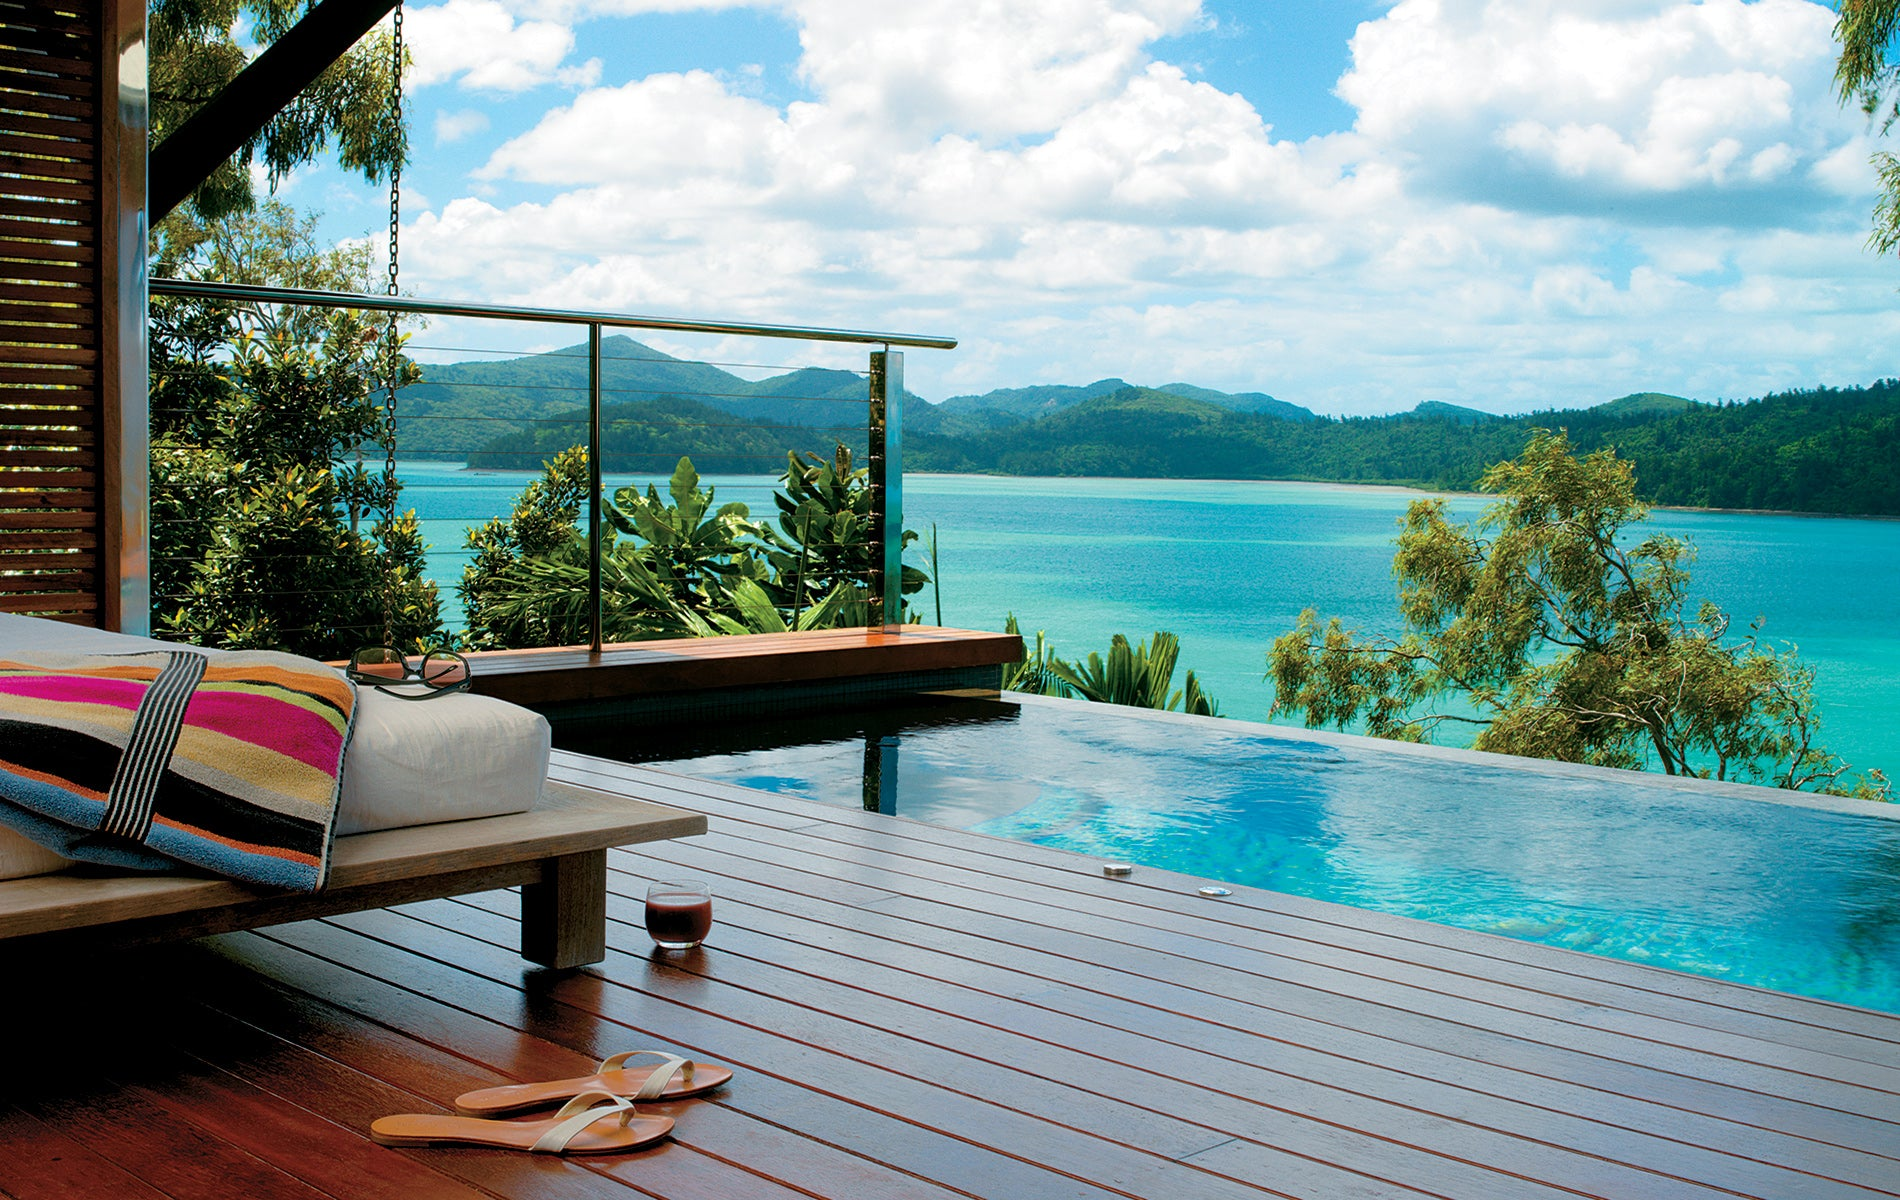 Beautiful day bed and private pool at Quaila resort on Hamilton Island image credit qualia.com.au